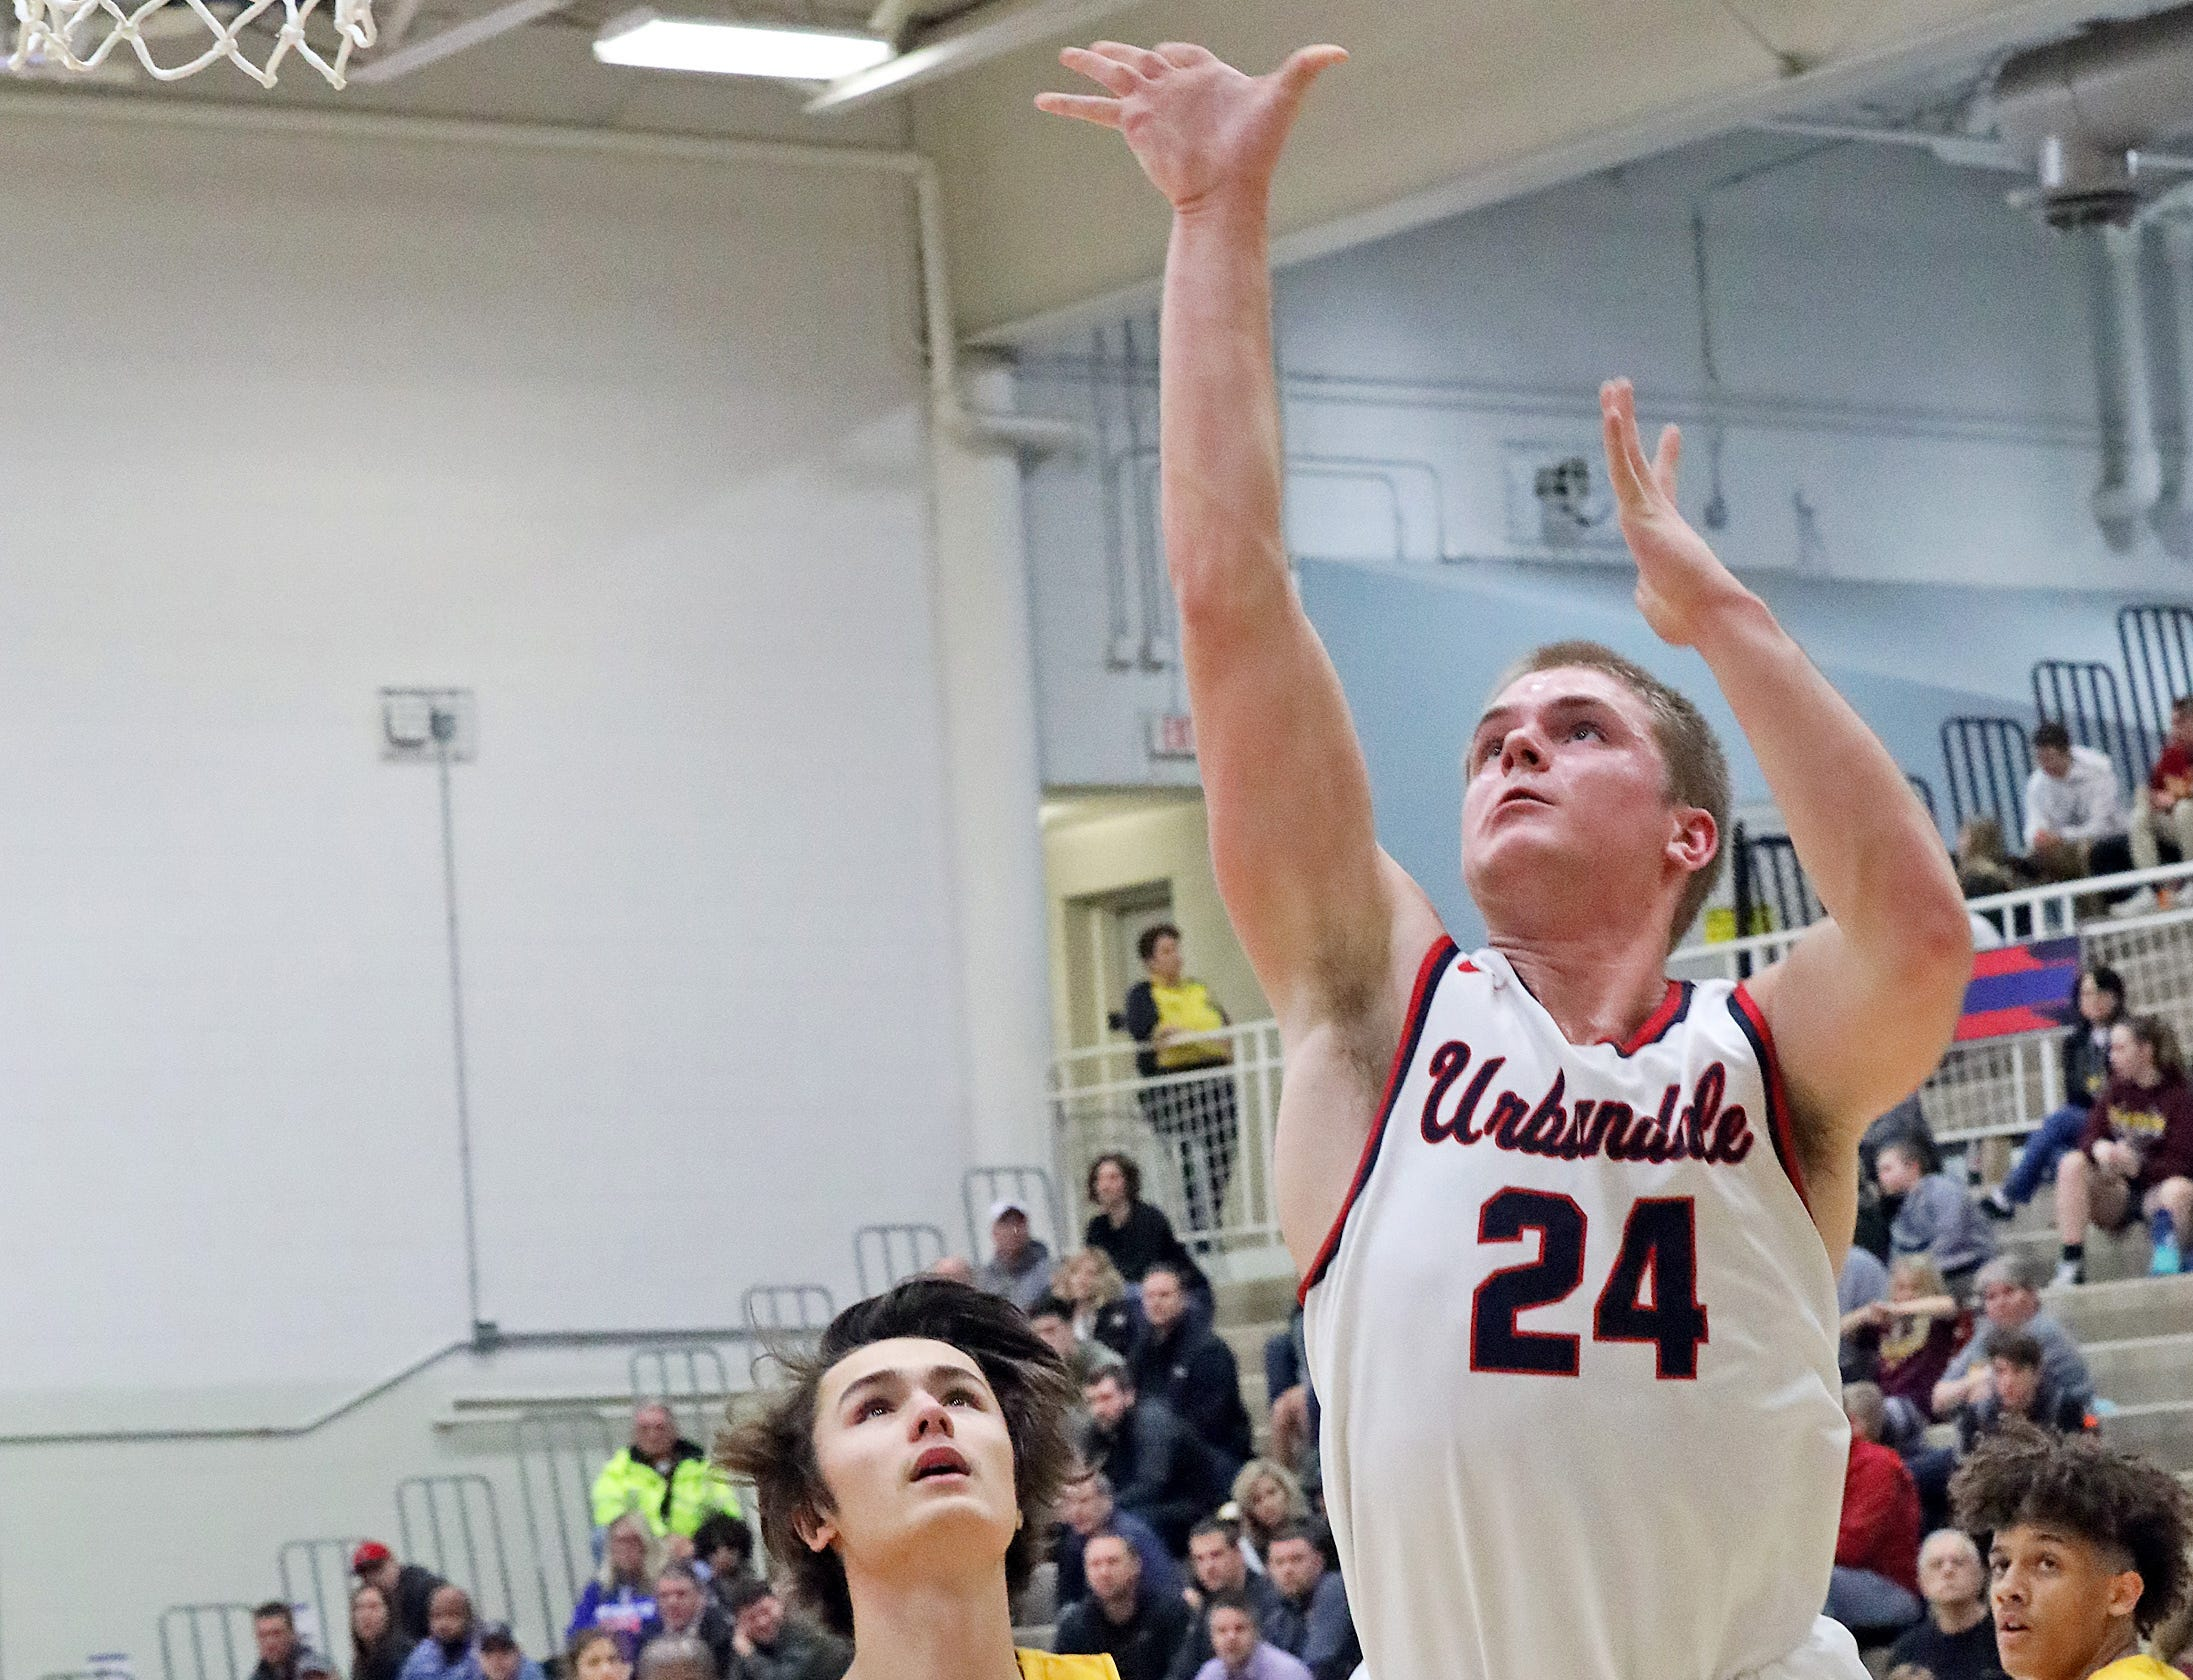 Urbandale senior guard Will Pattison hits the lay-up as the Ankeny Hawks compete against the Urbandale J-Hawks in high school basketball on Friday, Dec. 14, 2018 at Urbandale High School. Ankeny won 62 to 52 to remain undefeated at 6-0.